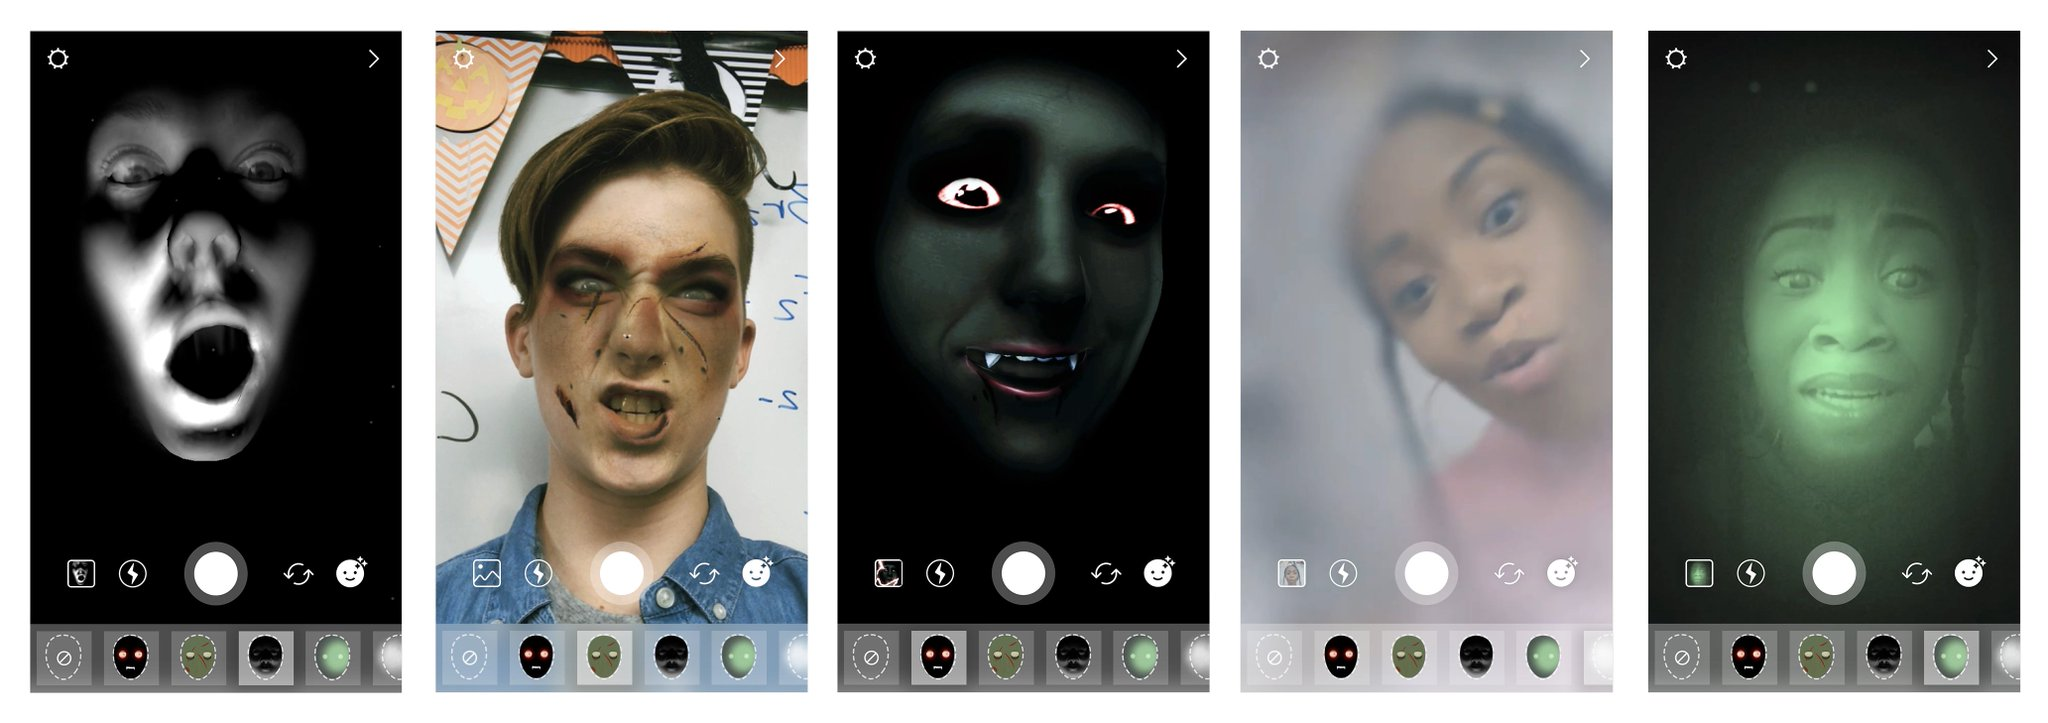 Get spooky with our new Halloween face filters and stickers! �� �� https://t.co/qxBfvrhxgW https://t.co/U4OdP9N6kw